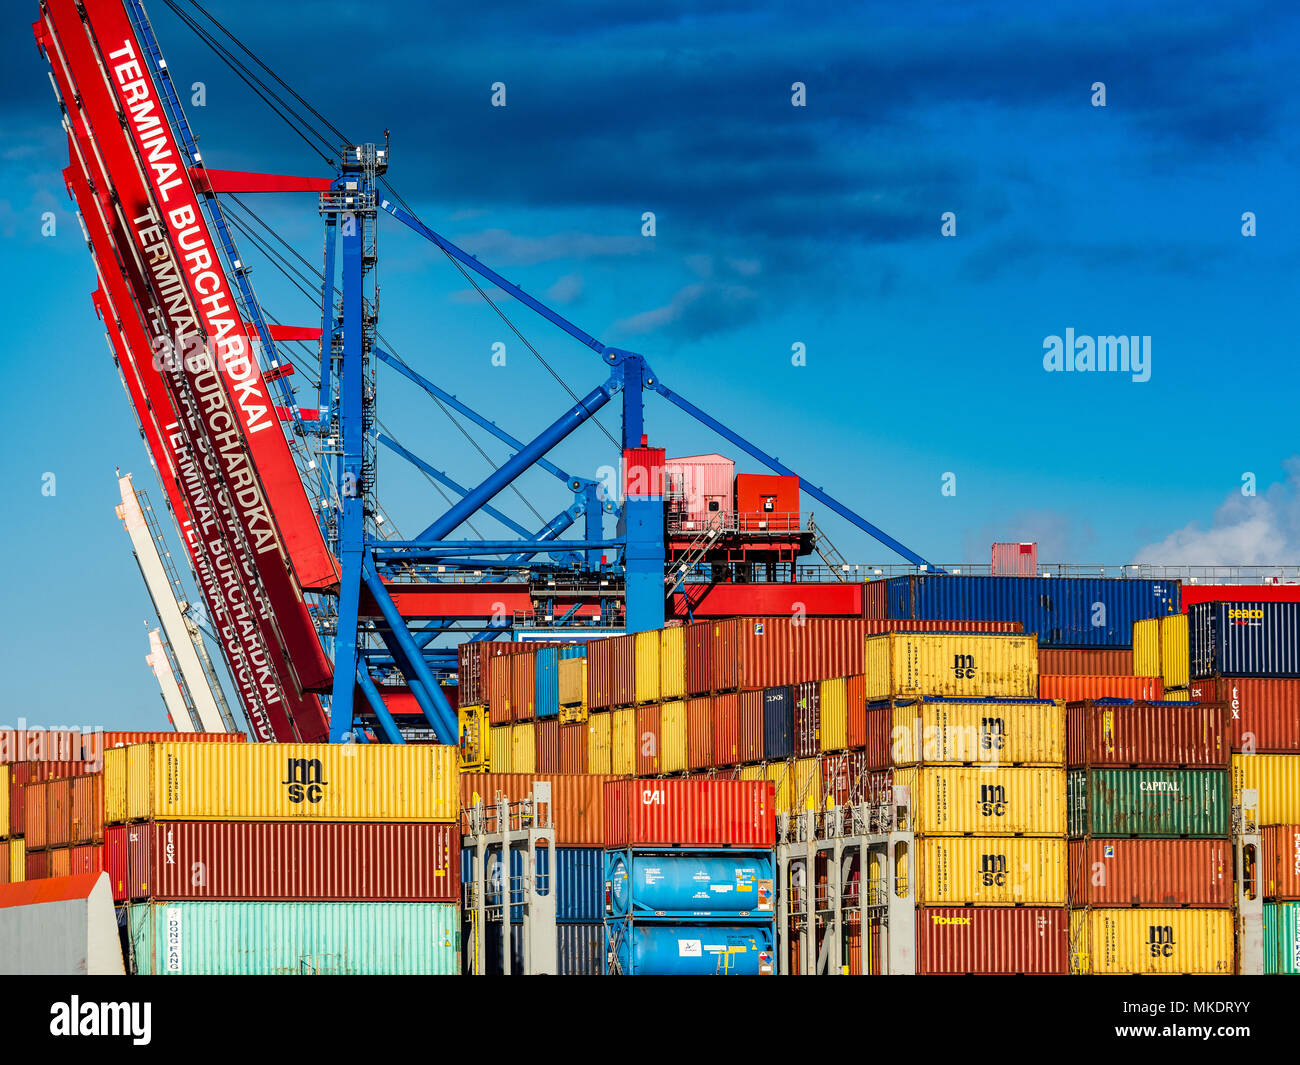 Global Trade World Trade International Trade - containers arrive in Hamburg Port, one of Europe's largest ports. - Stock Image